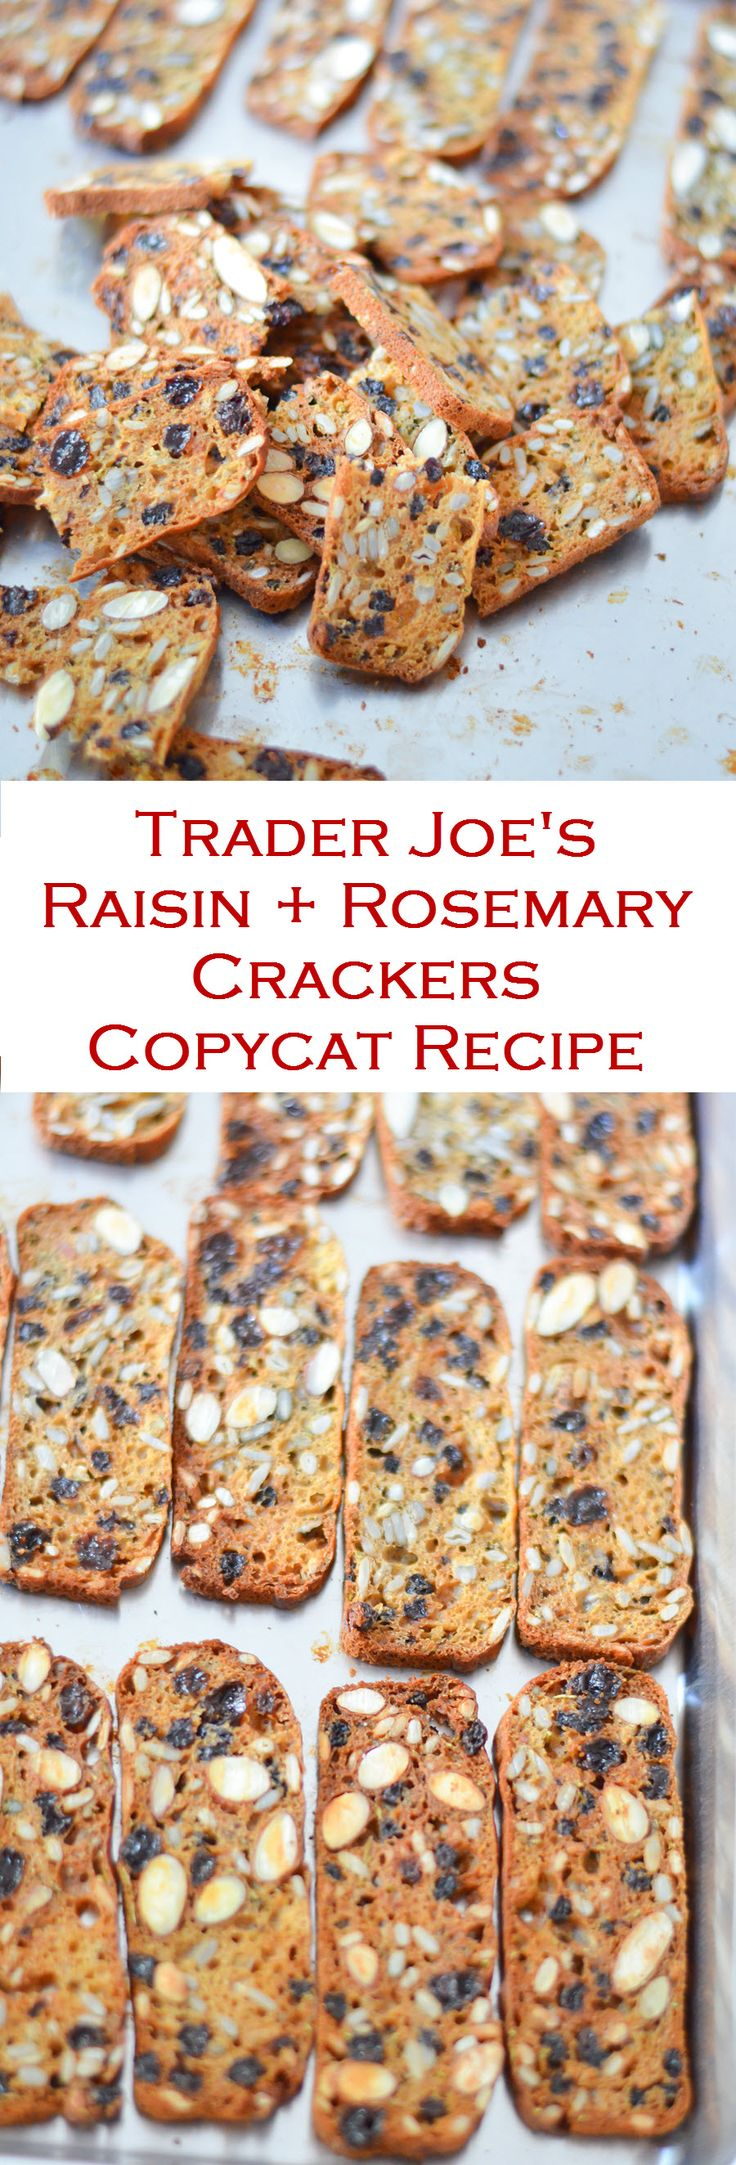 Easy, homemade recipe for Trader Joe's Raisin + Rosemary Crackers. Make this Copycat version today!